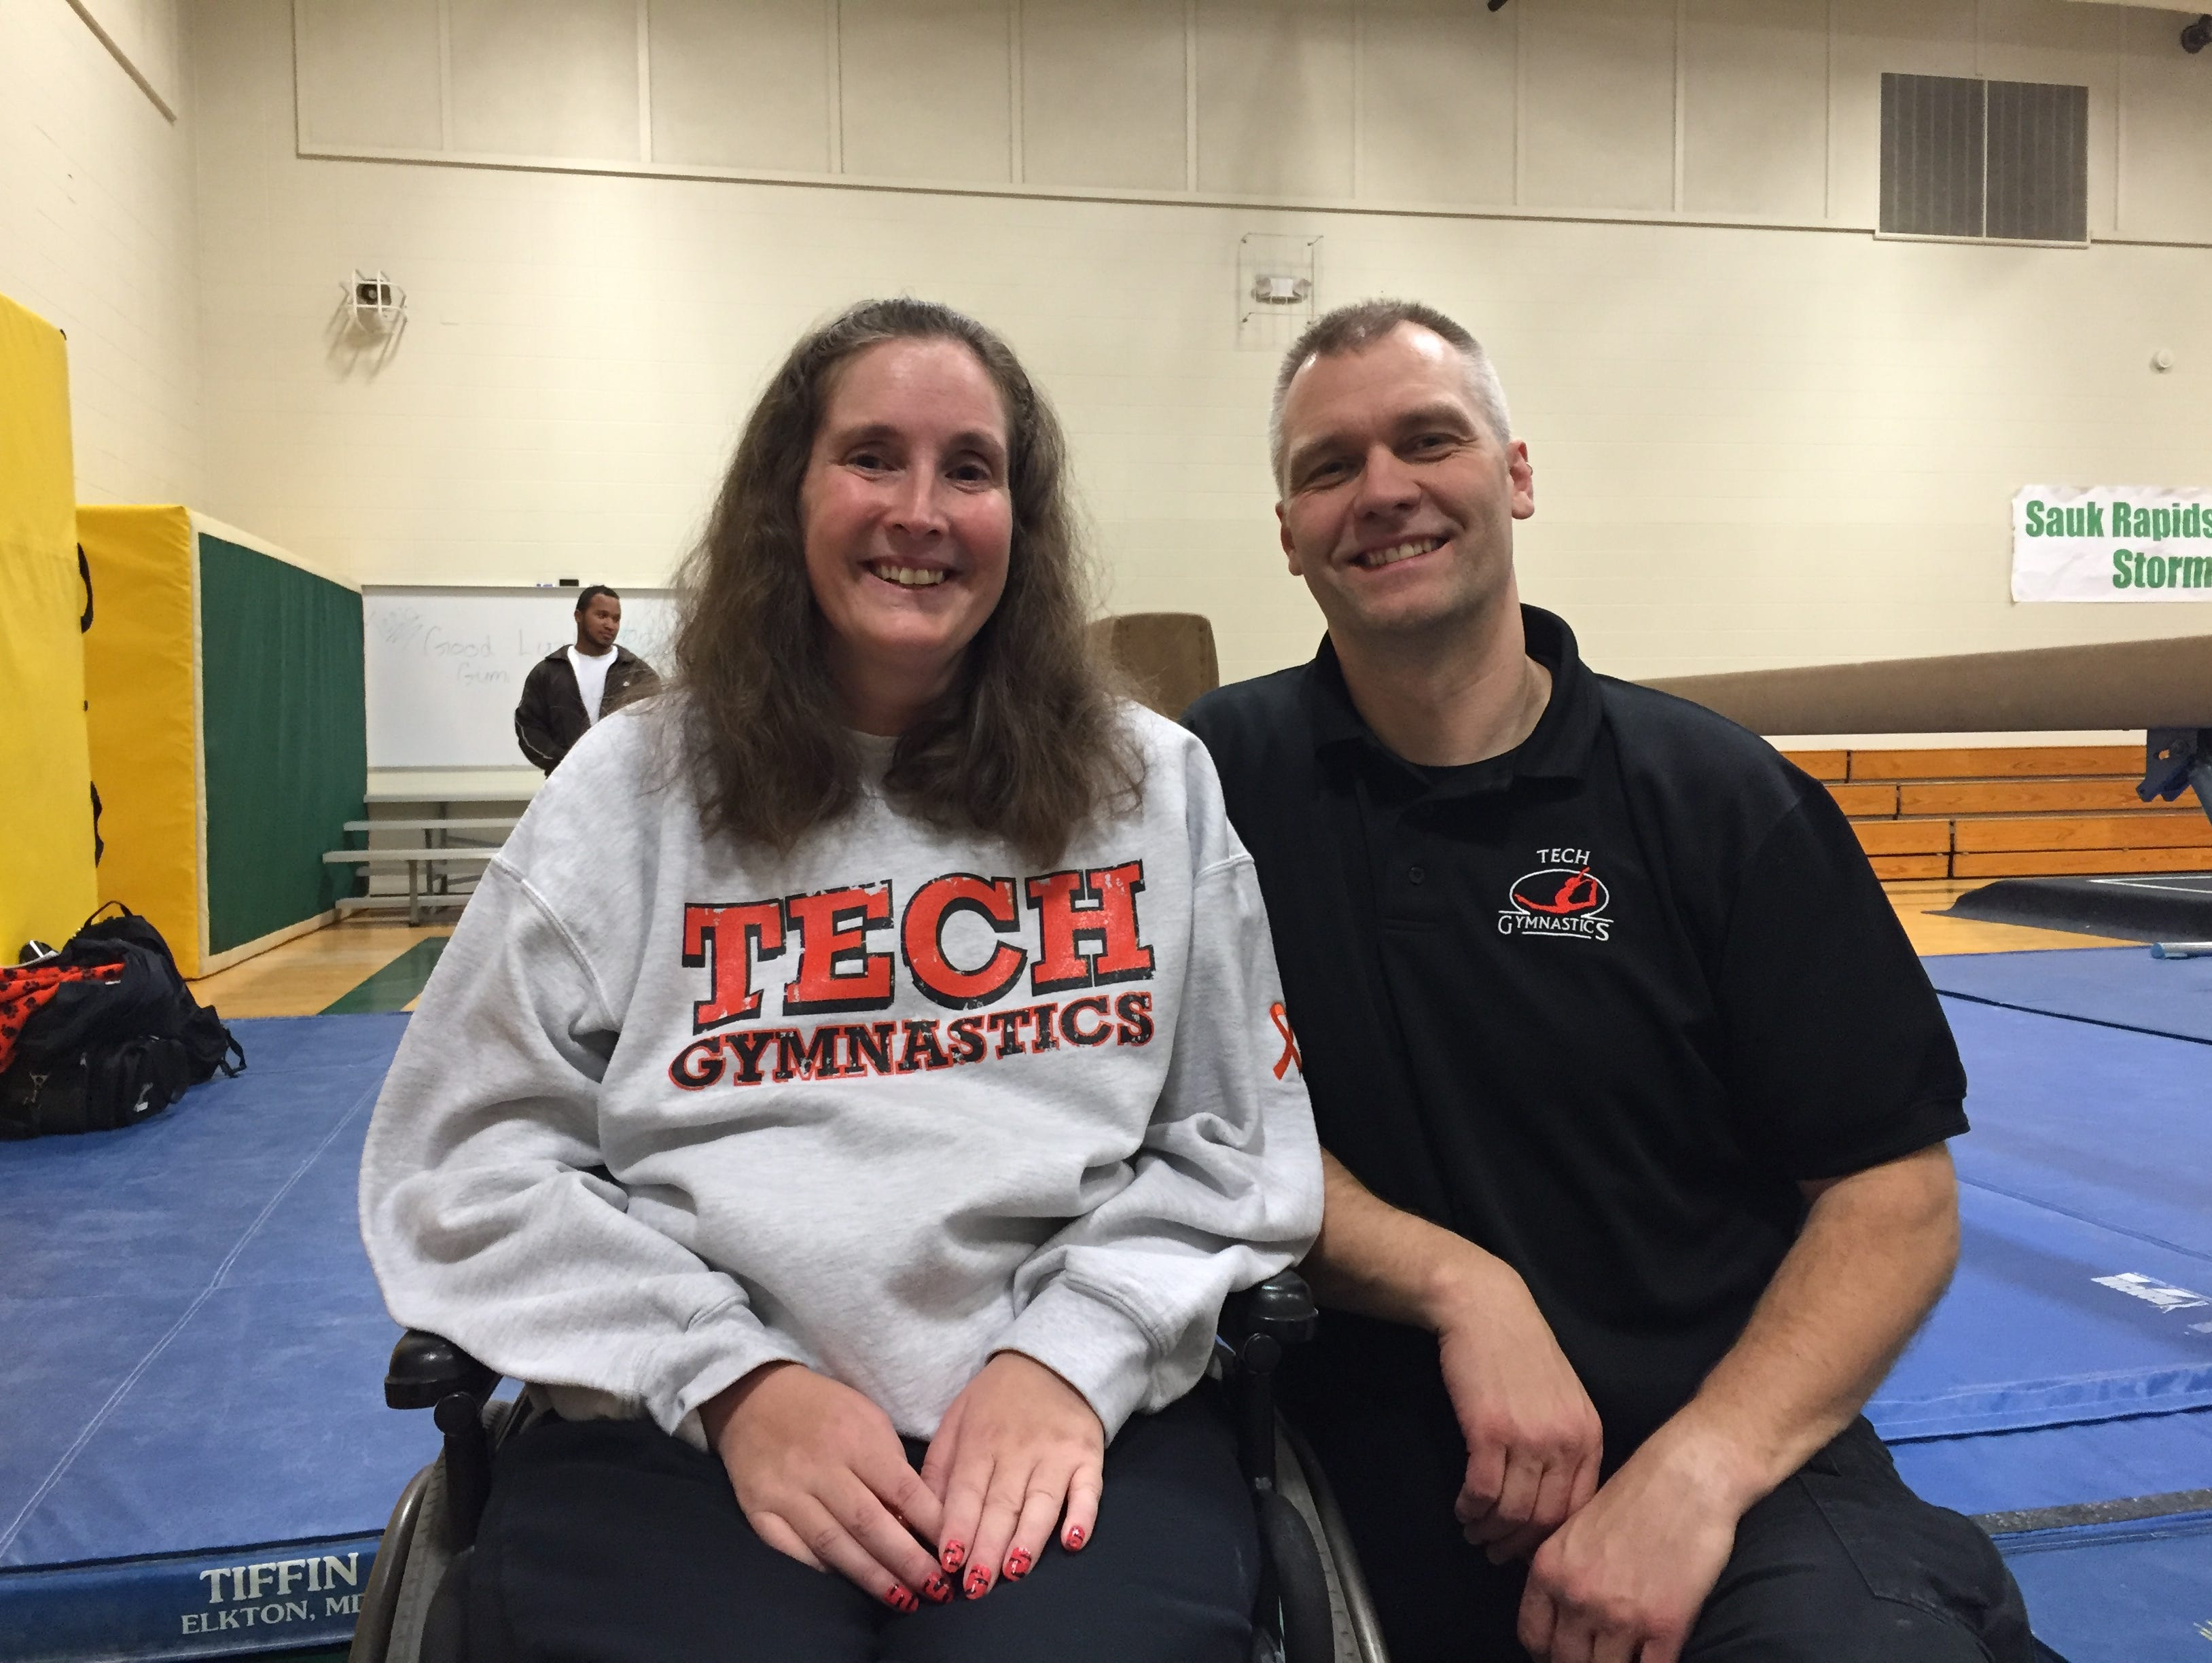 Colleen and Joel Stark-Haws are the co-head coaches for the St. Cloud Tech/Cathedral gymnastics program.